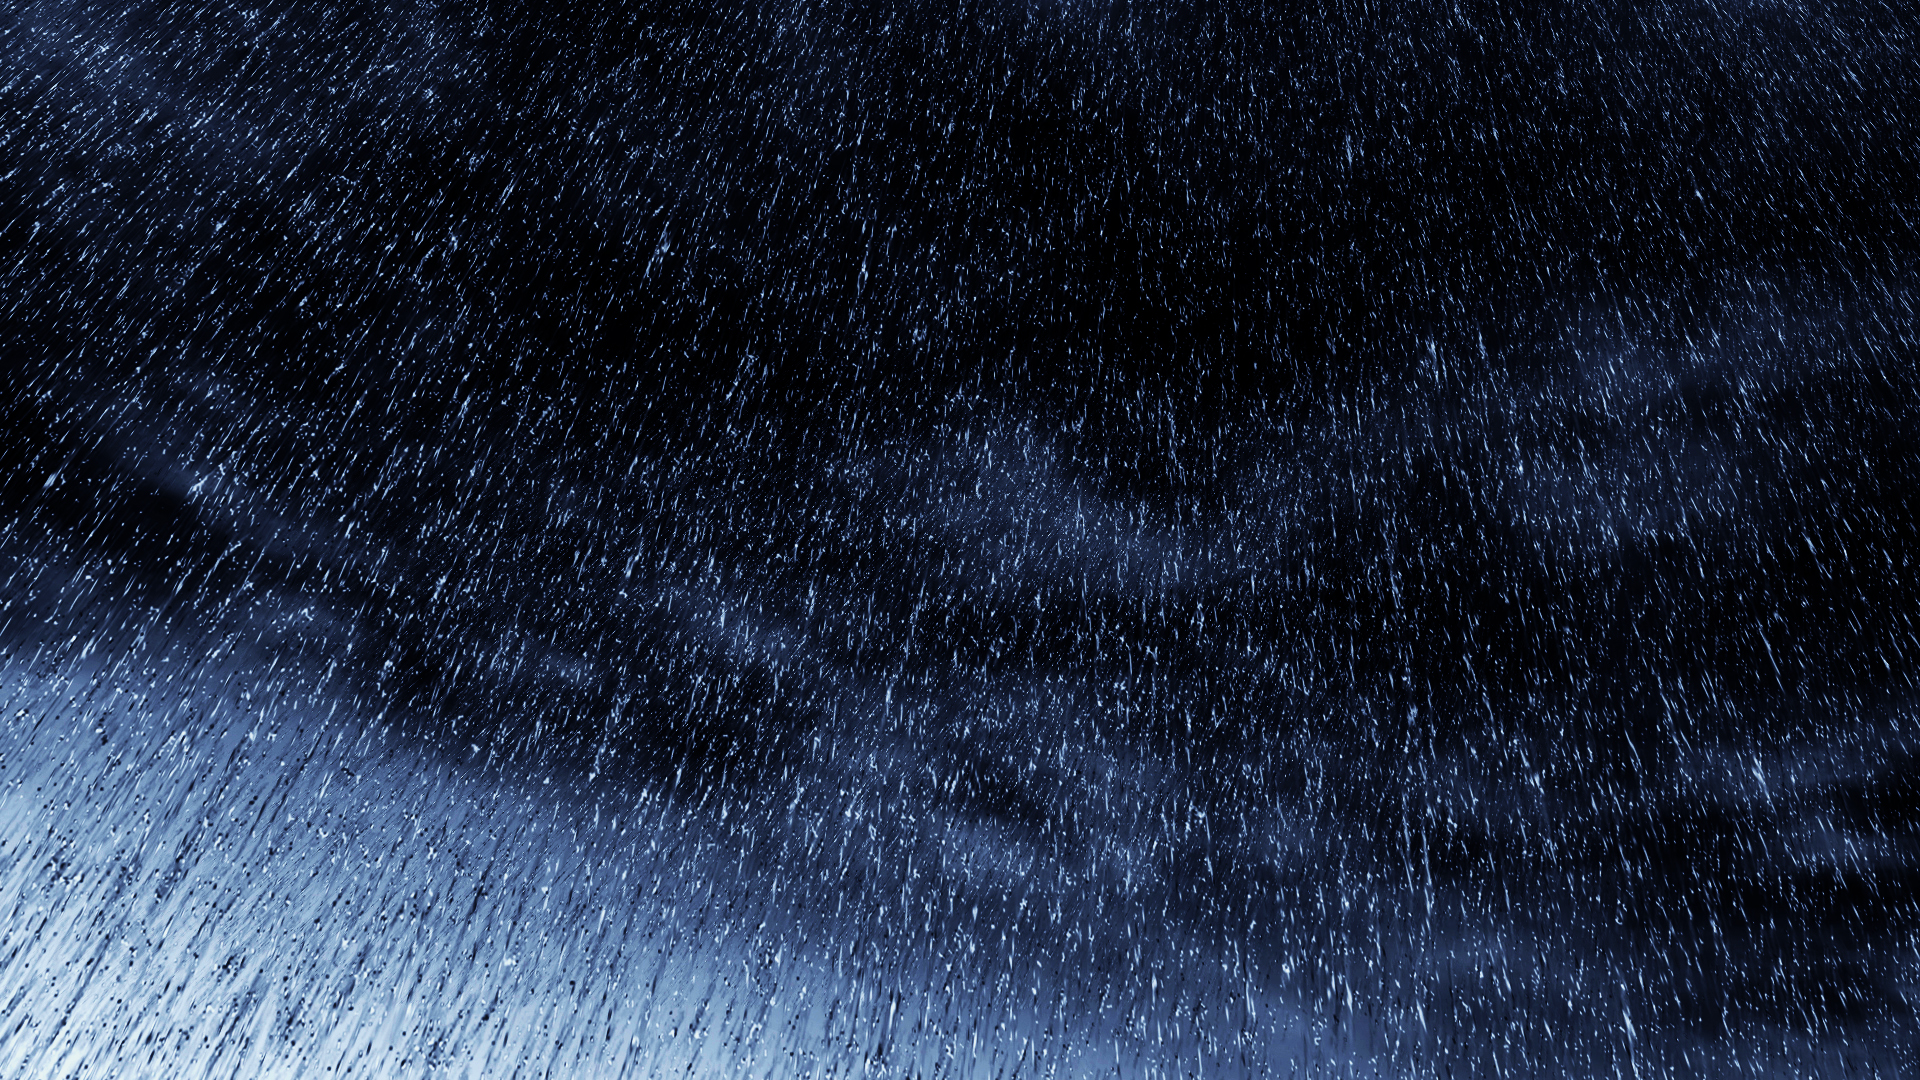 Iphone Rain Wallpaper Hdgalaxywallpaper